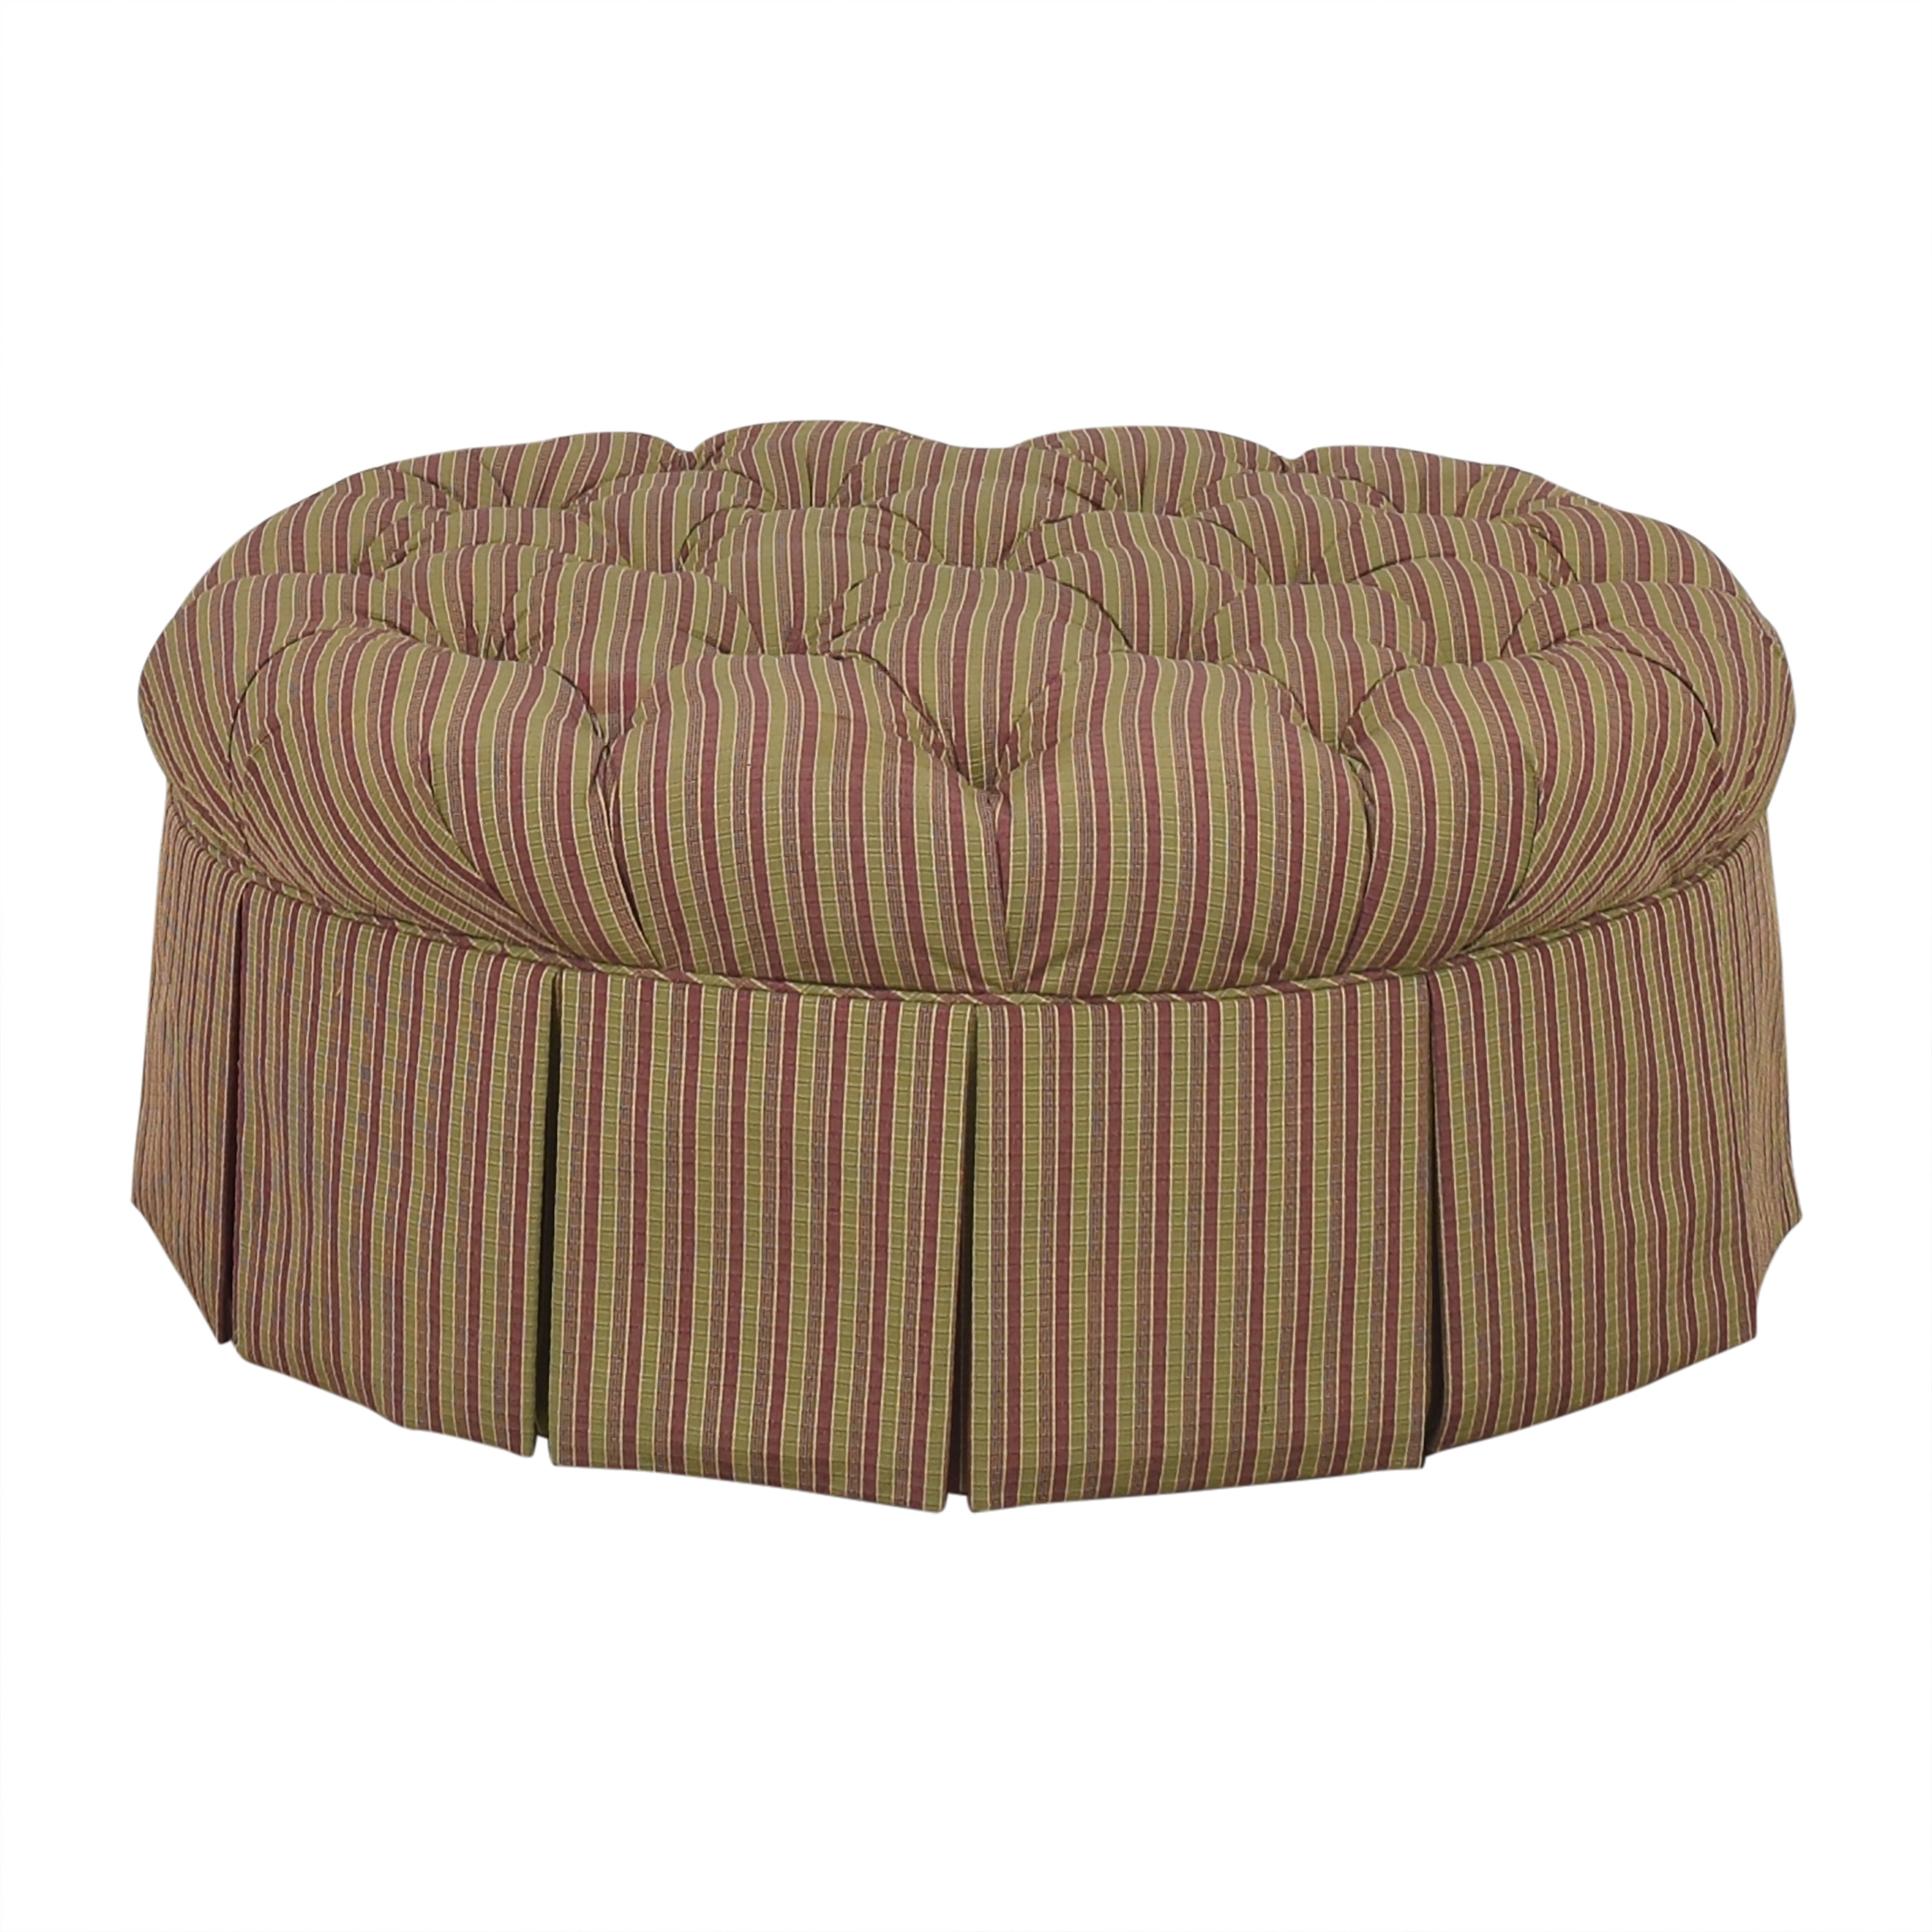 Domain Home Domain Home Round Tufted Ottoman price